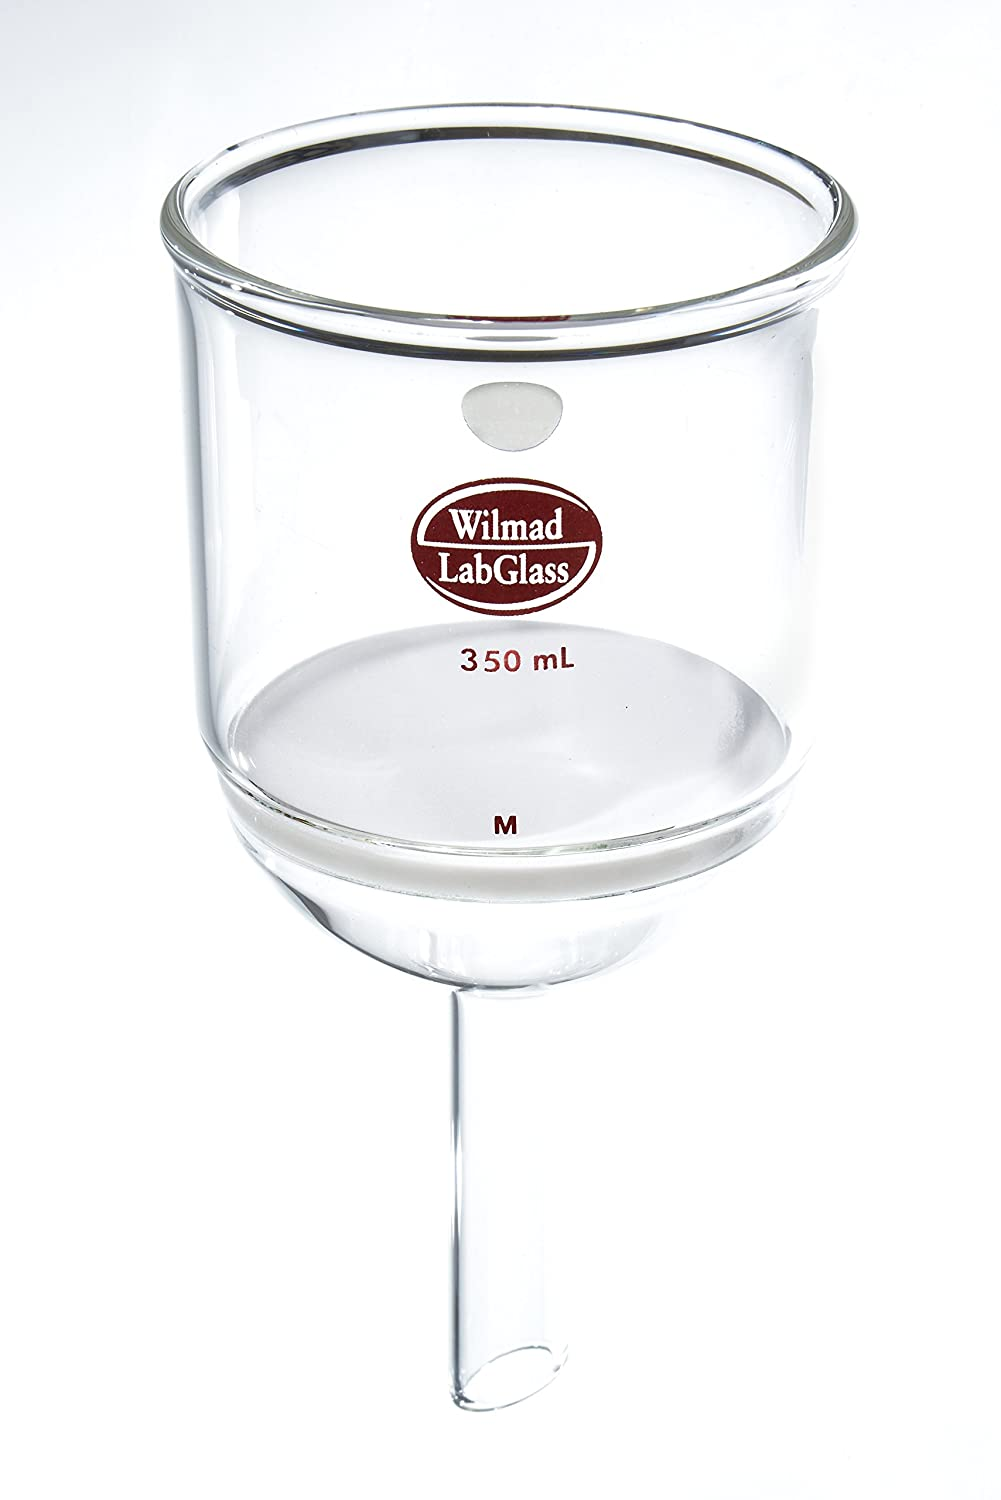 Wilmad-LabGlass LG-7080-142 Buchner Filter Funnel with shopping Fritted D 1 year warranty